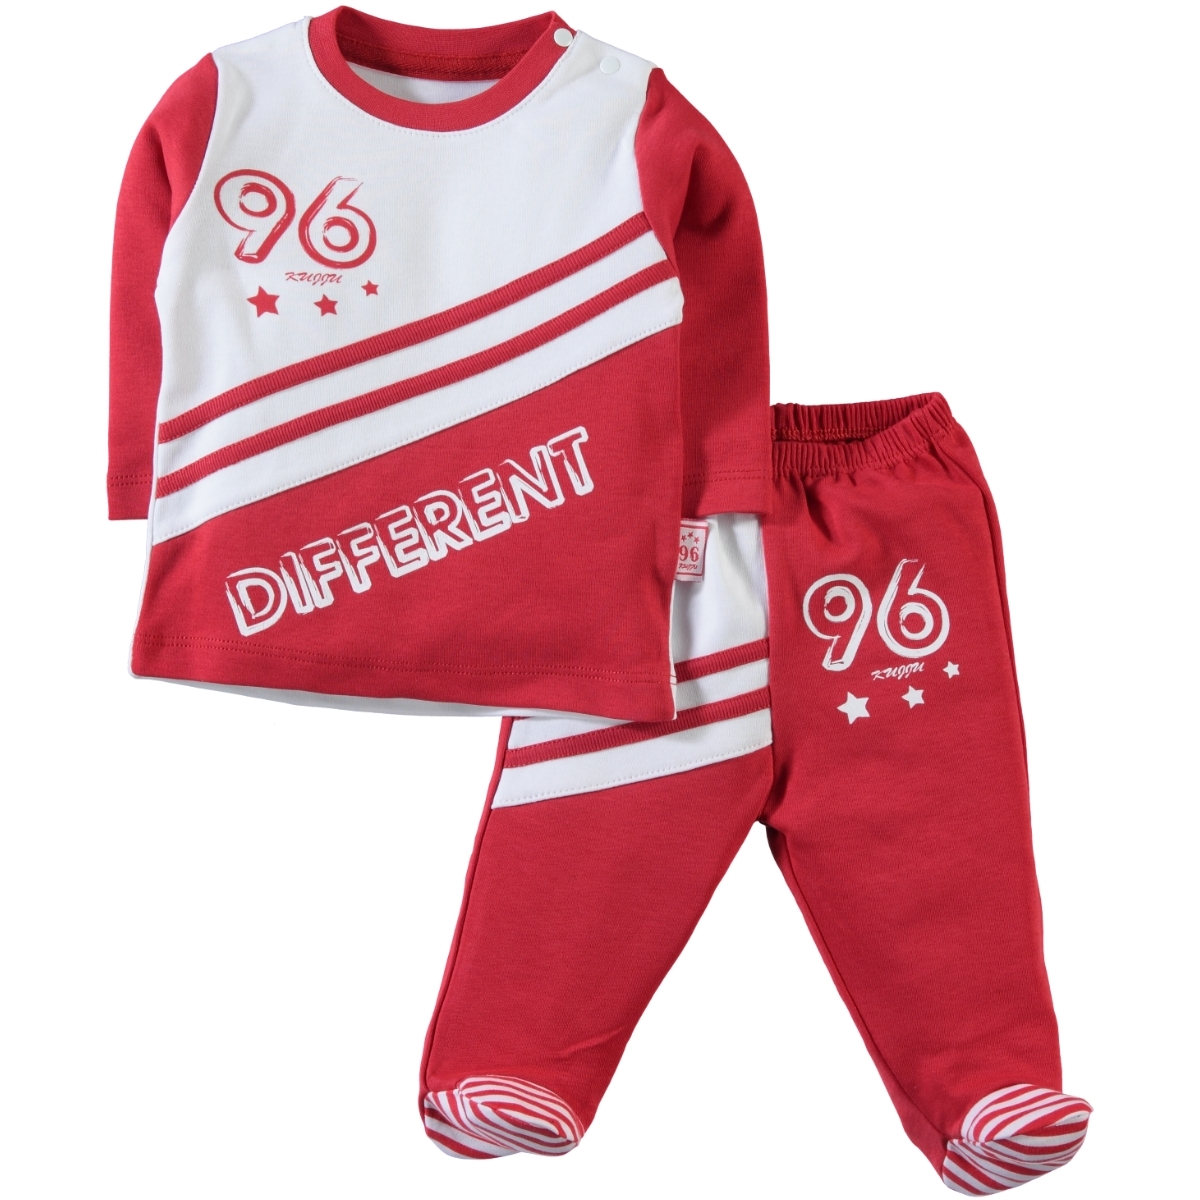 Kujju 3-18 Months Baby Boy Red Suit